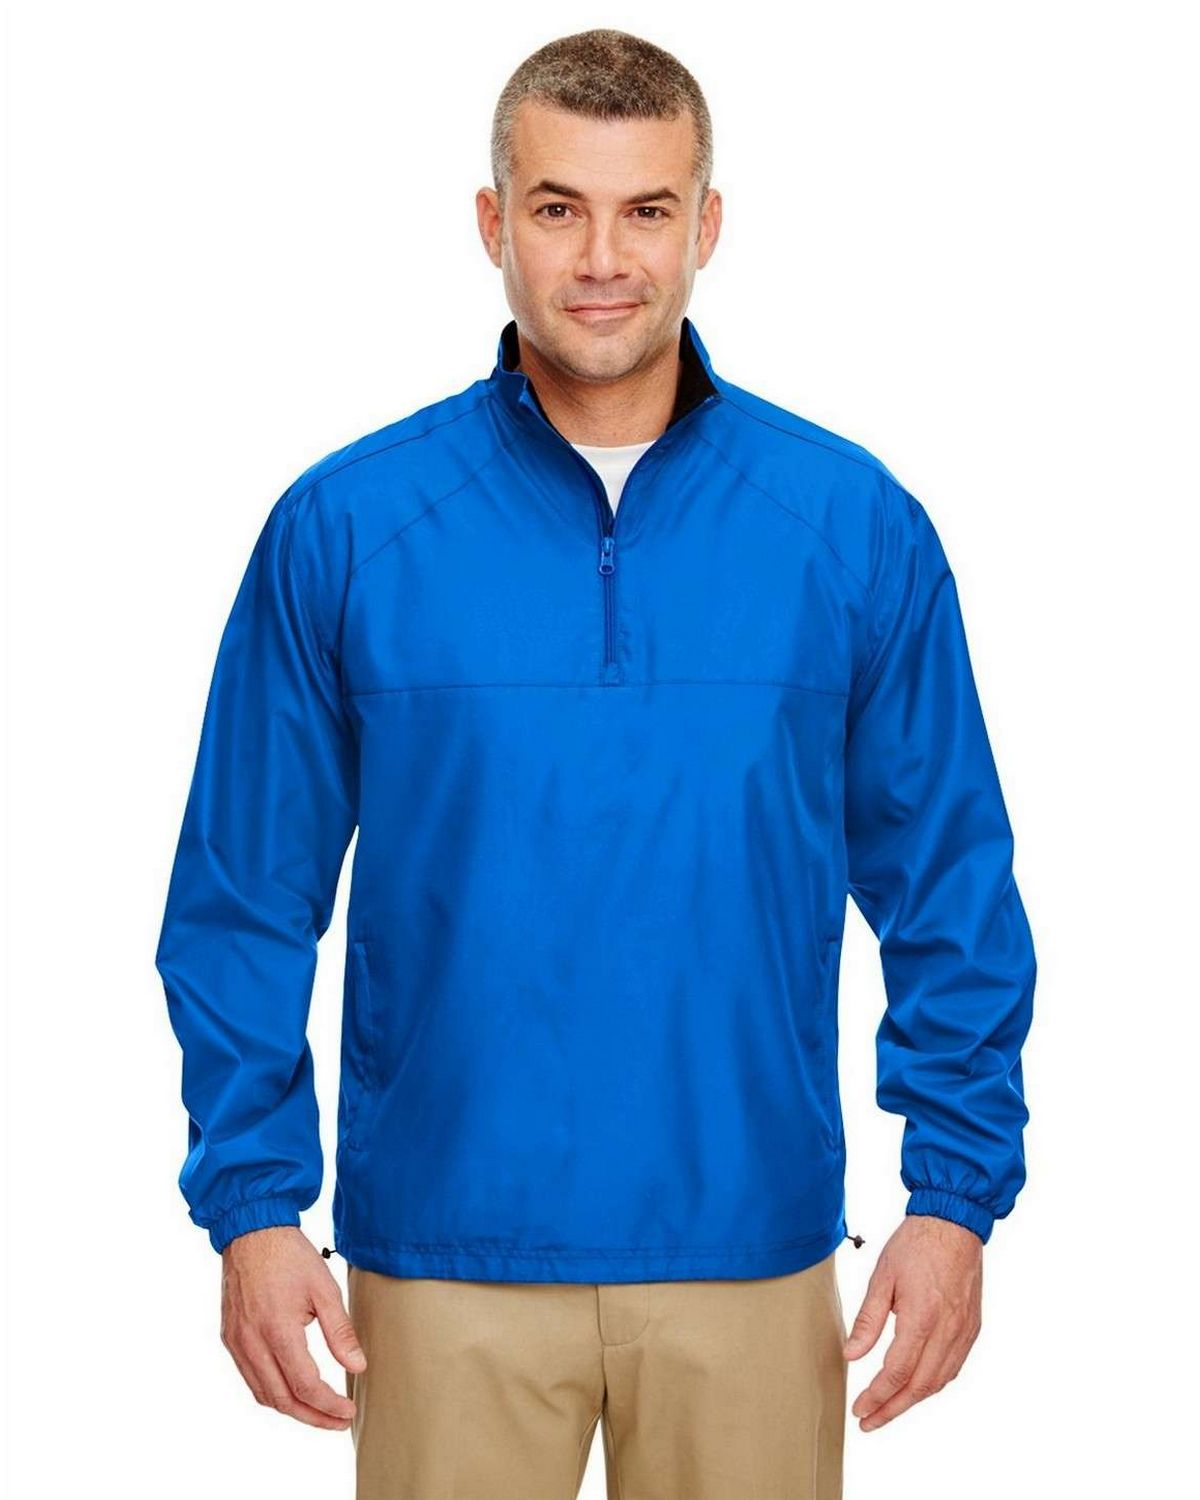 Ultraclub 8936 UC Poly 1/4 Zip Pullover